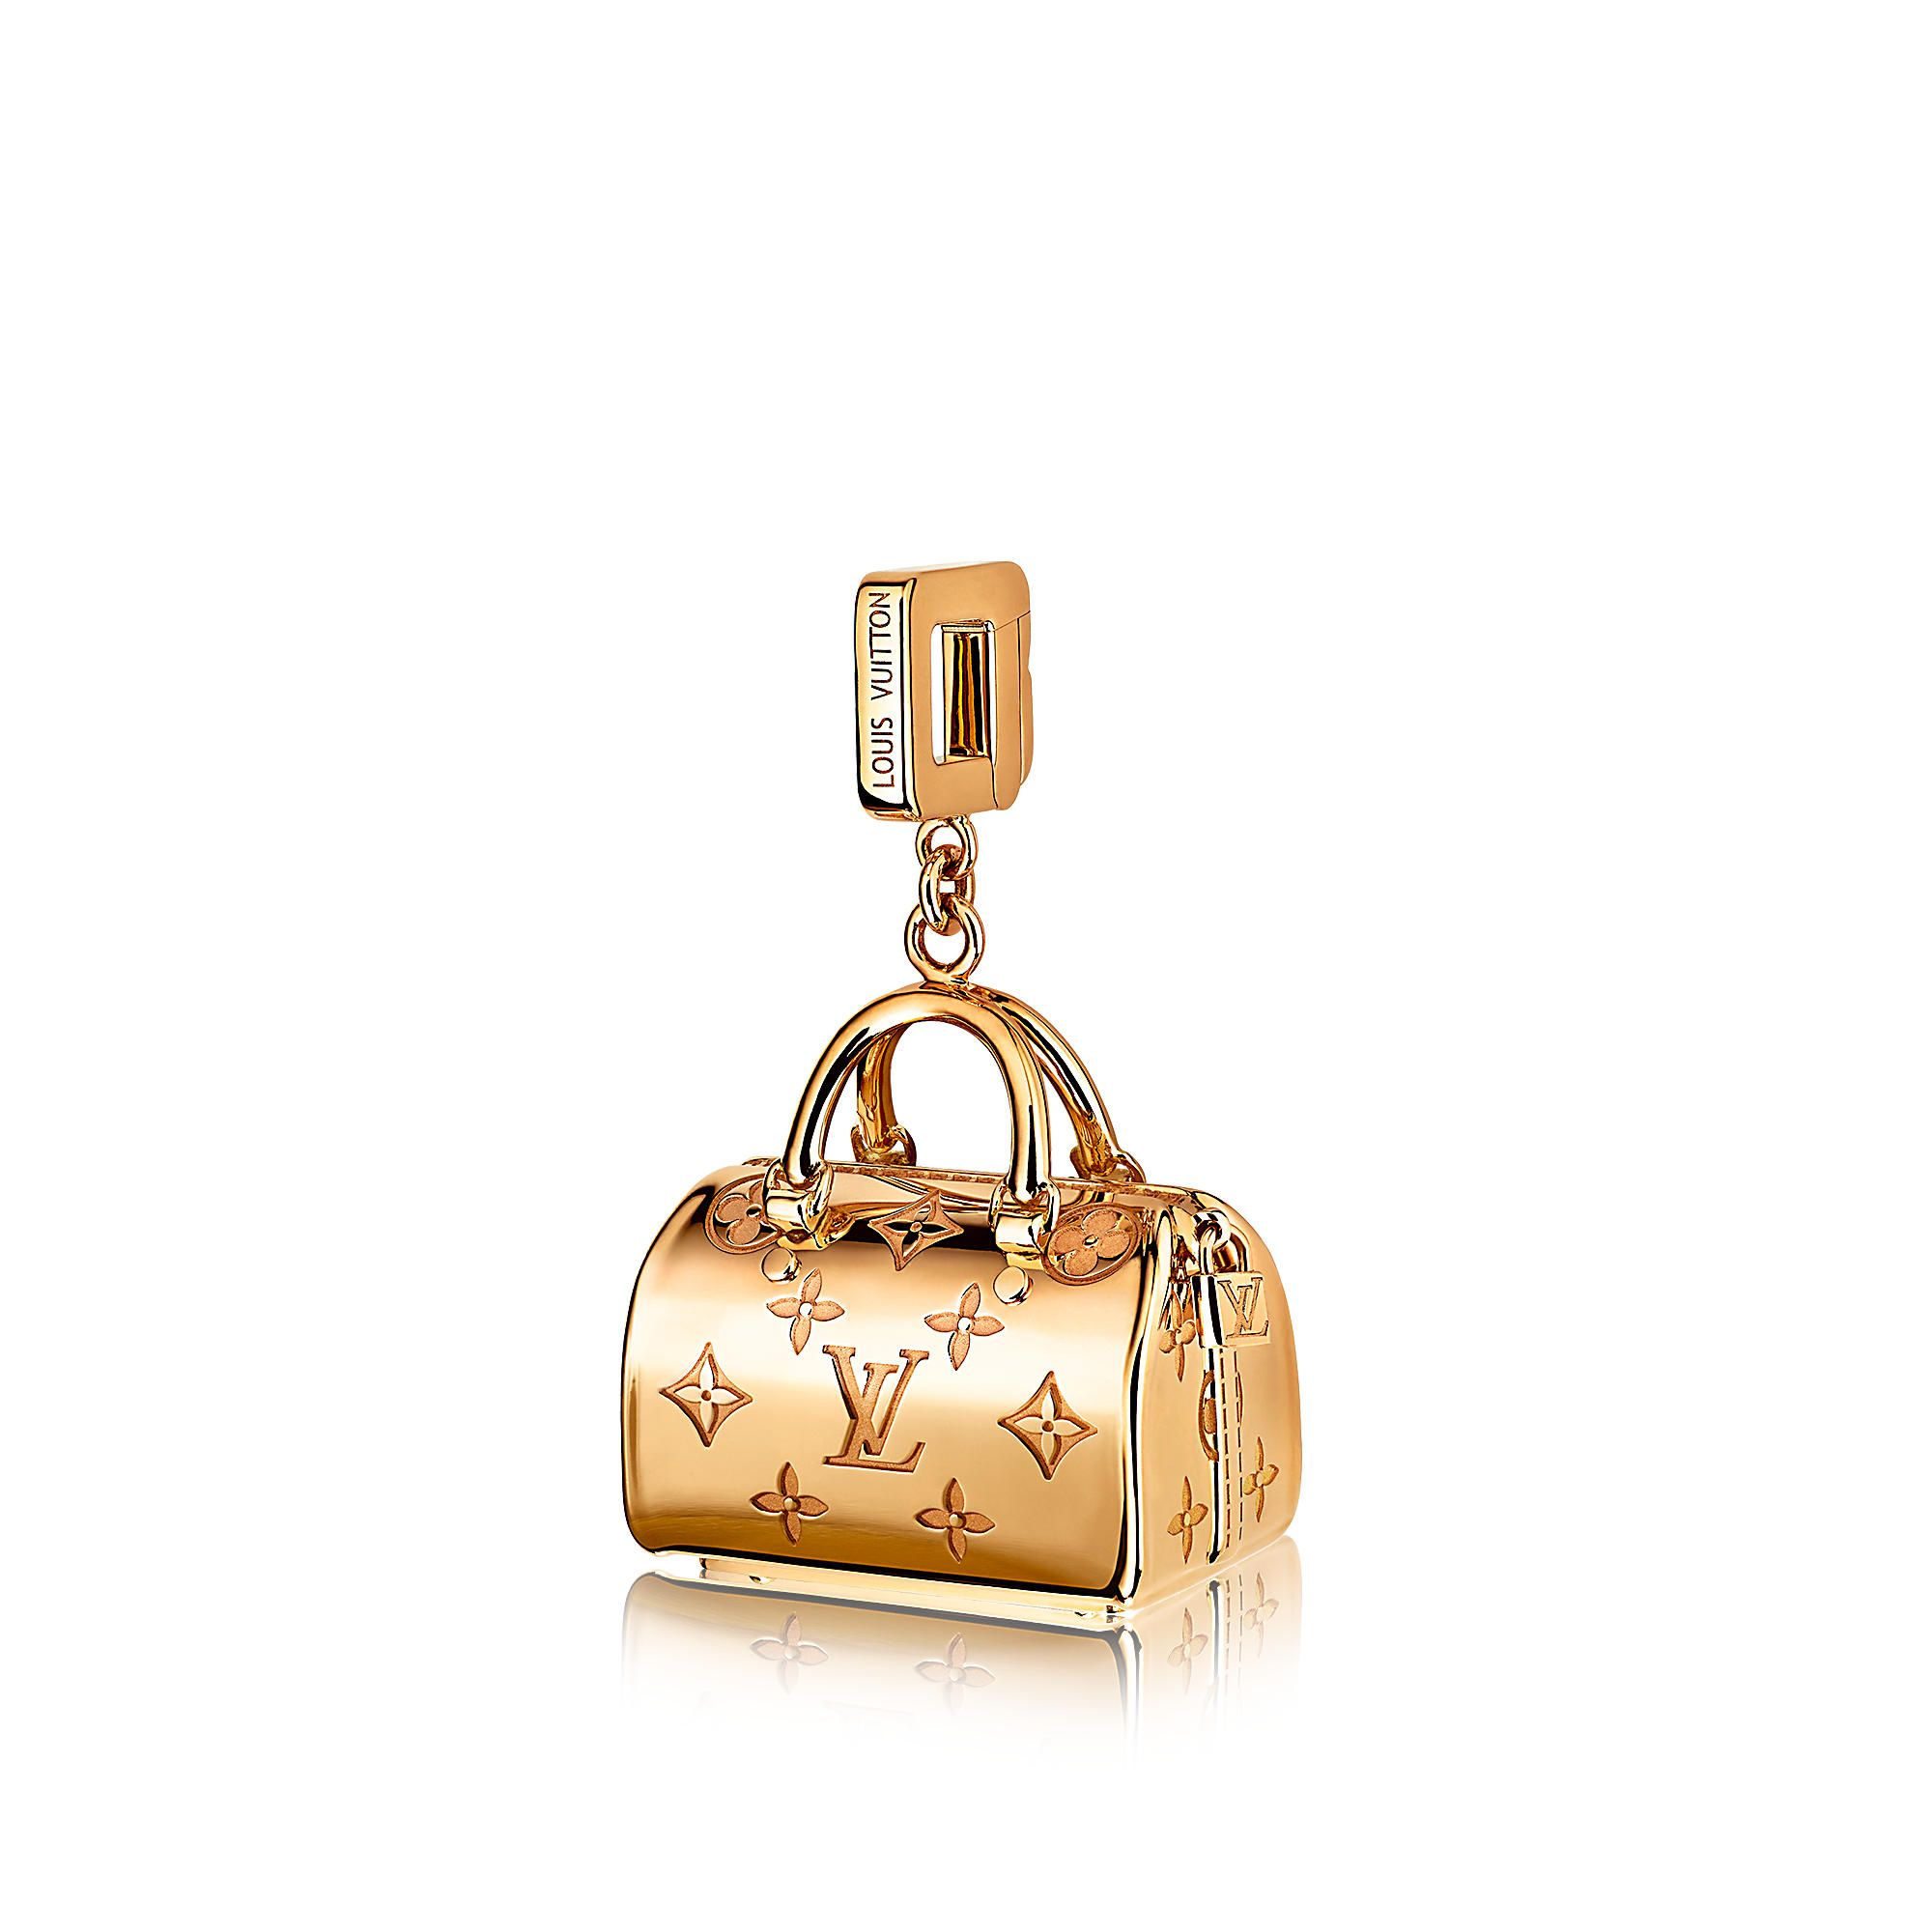 Discover louis vuitton speedy empreinte charm in yellow gold via